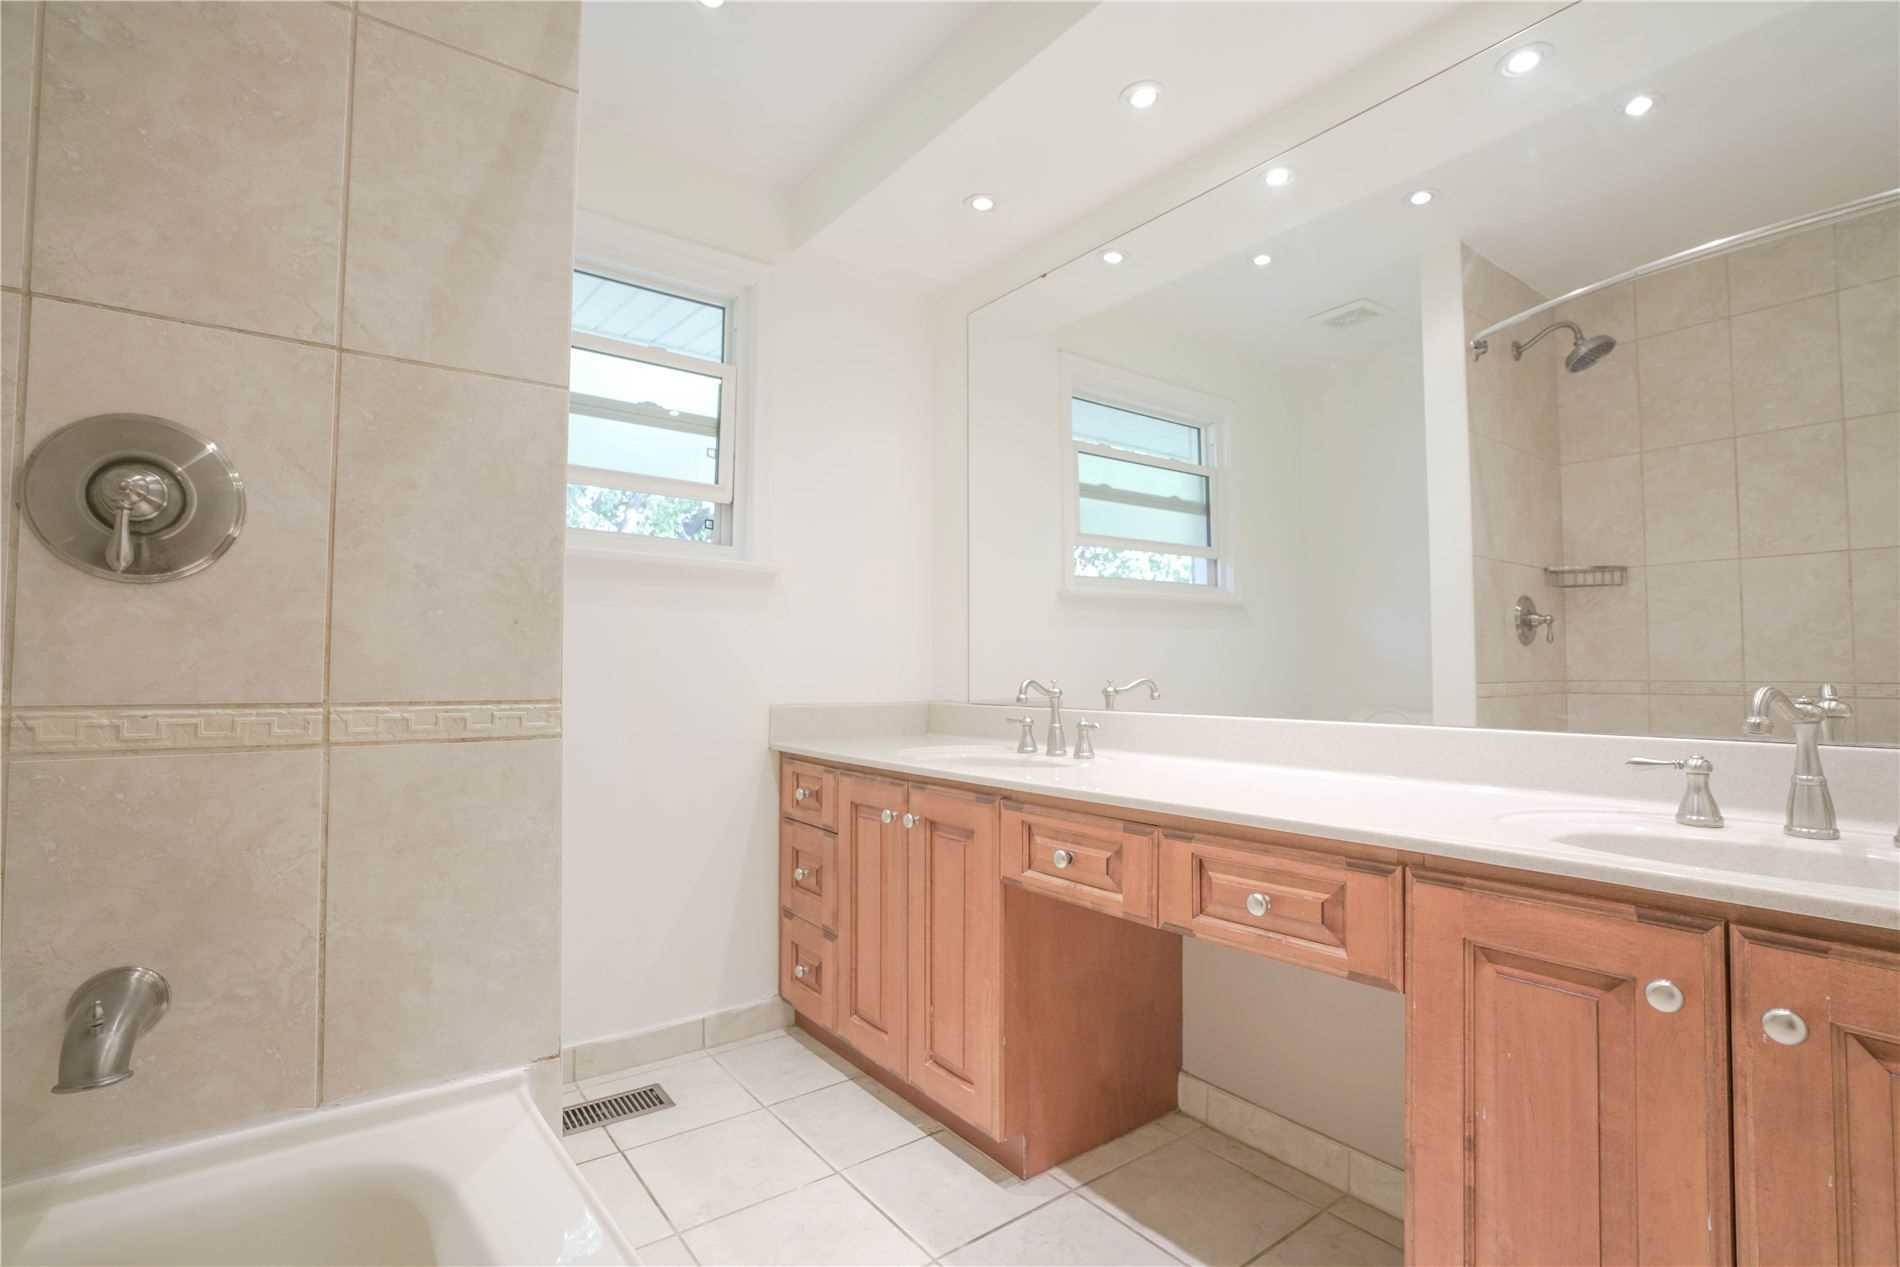 Detached house For Sale In Toronto - 25 Tollerton Ave, Toronto, Ontario, Canada M2K2H1 , 4 Bedrooms Bedrooms, ,3 BathroomsBathrooms,Detached,For Sale,Tollerton